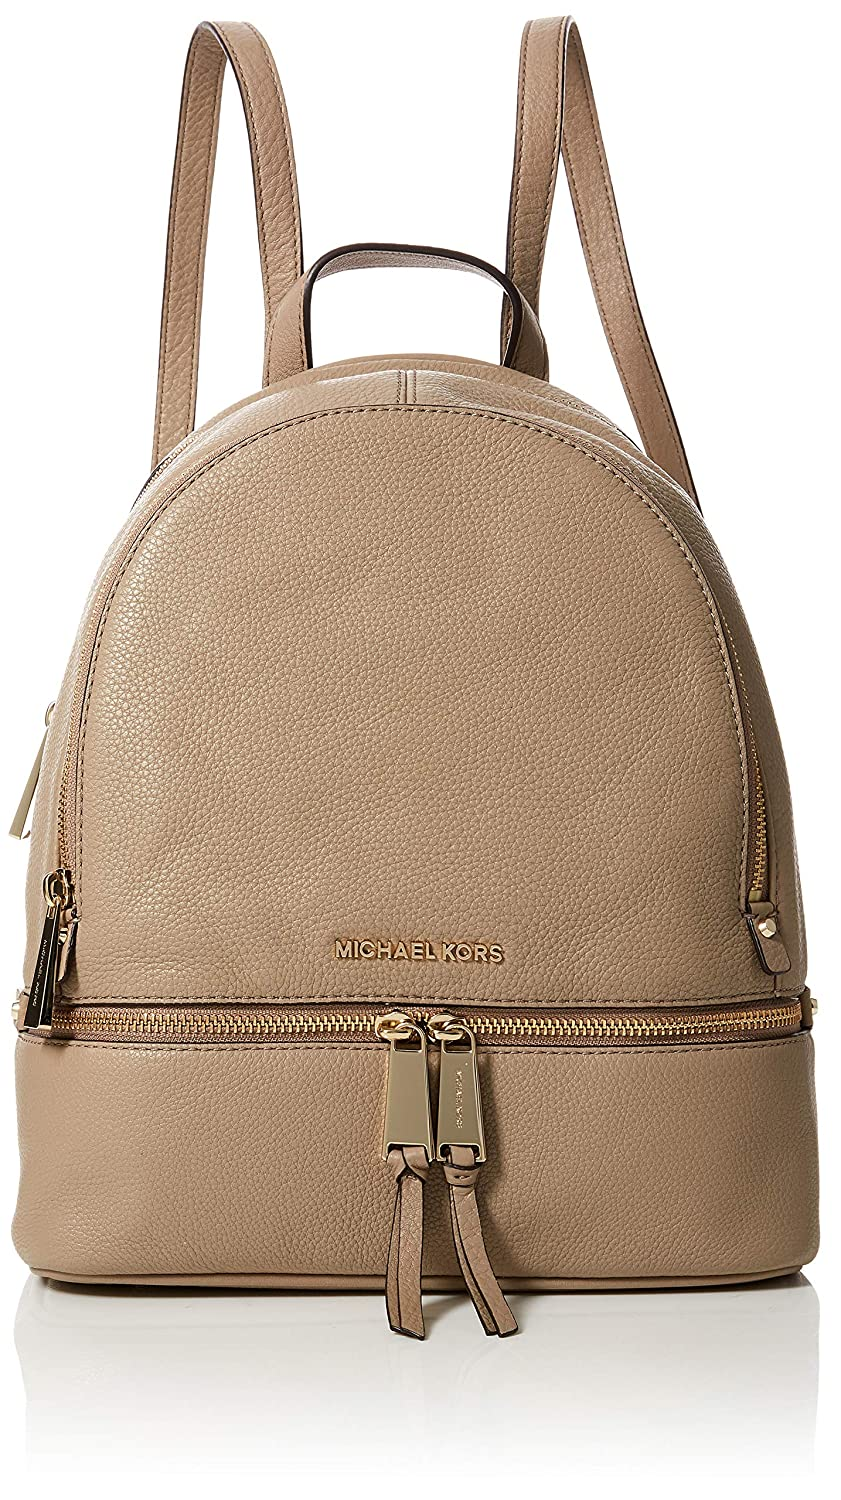 d229ce0d92cf Amazon.com  Michael Kors Womens Rhea Zip Backpack Handbag Beige (TRUFFLE)   Shoes